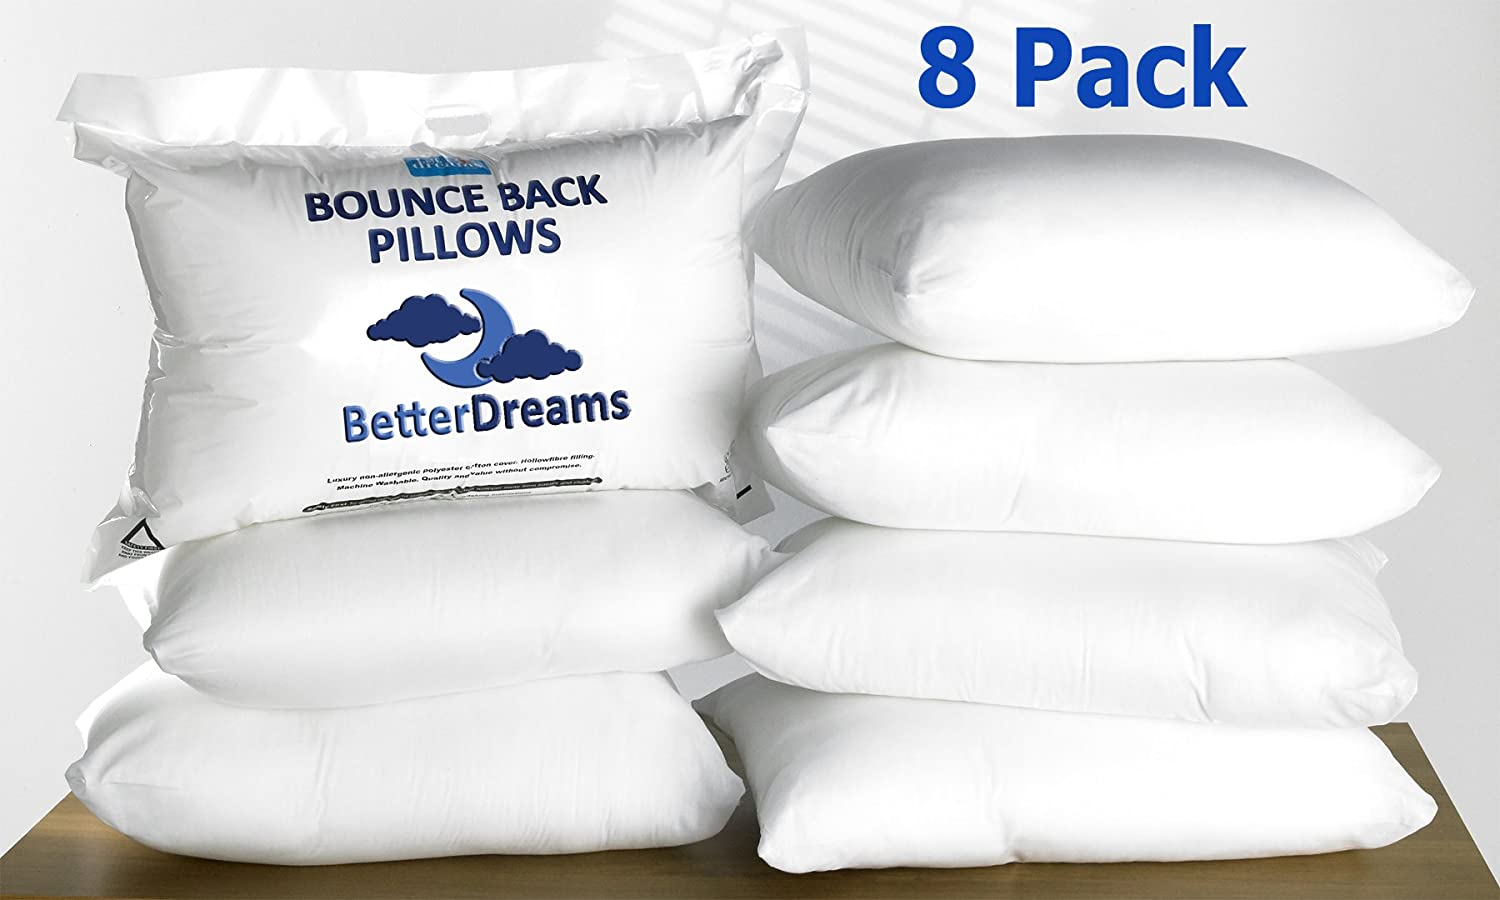 Bounce Back Pillows 8 Pack Quality Hollow Fibre Filling Free Uk Delivery by Amazon